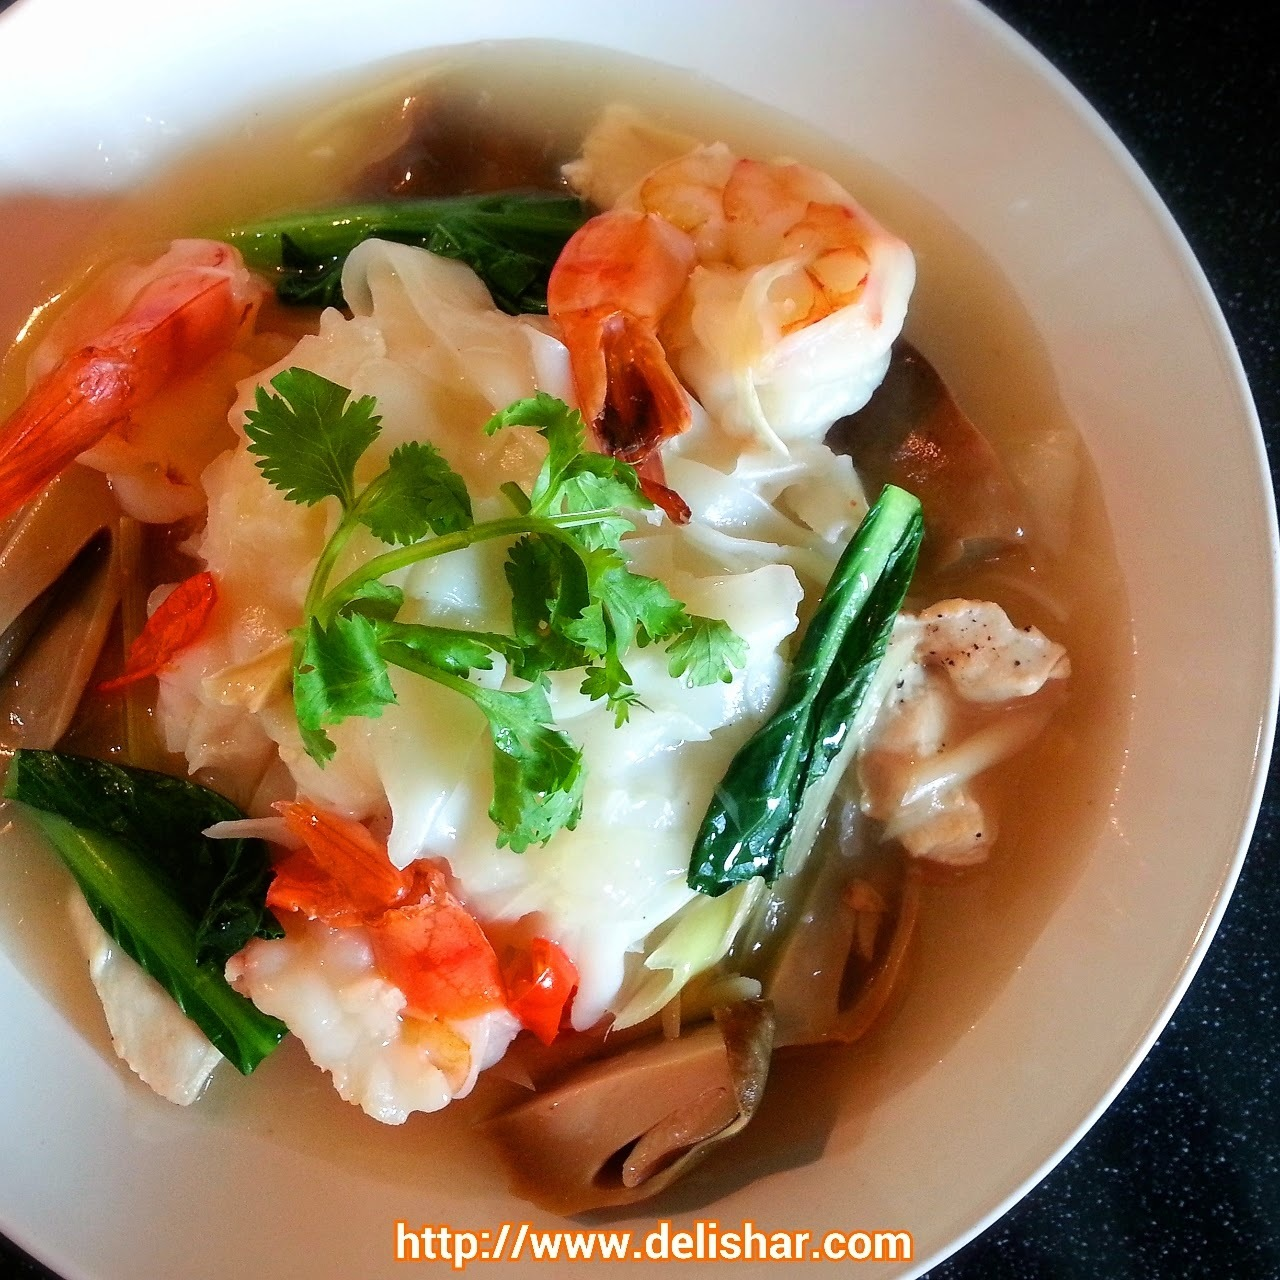 Tom Yum Hor Fun (Rice Noodle with Tom Yum Gravy)